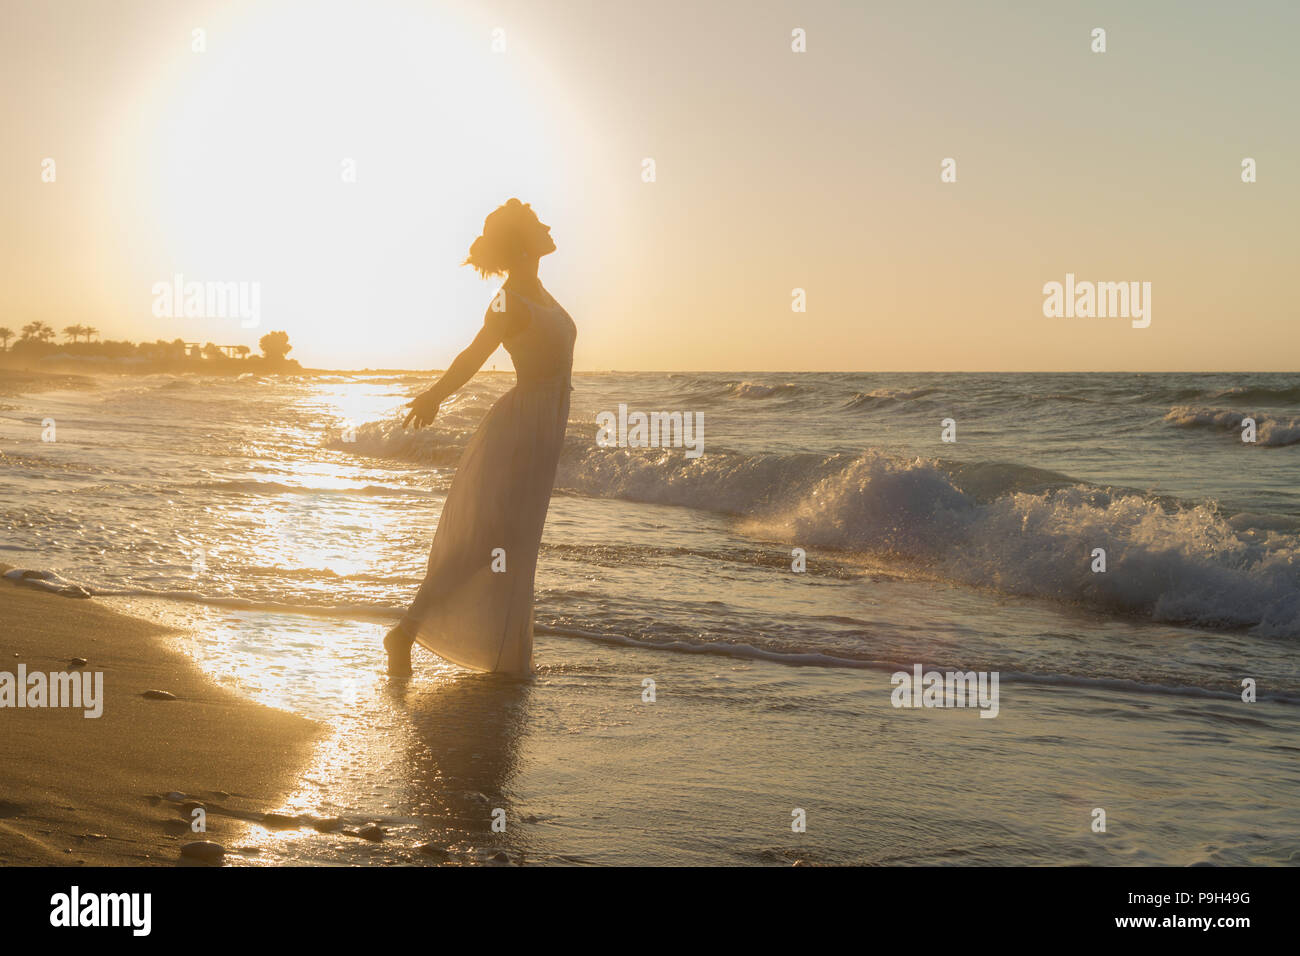 Woman with arms raised up, barefoot, feeling happy, alive and free in nature meditating at sandy misty beach breathing clean fresh ocean air at dusk. Summer holidays lifestyle concept - Stock Image